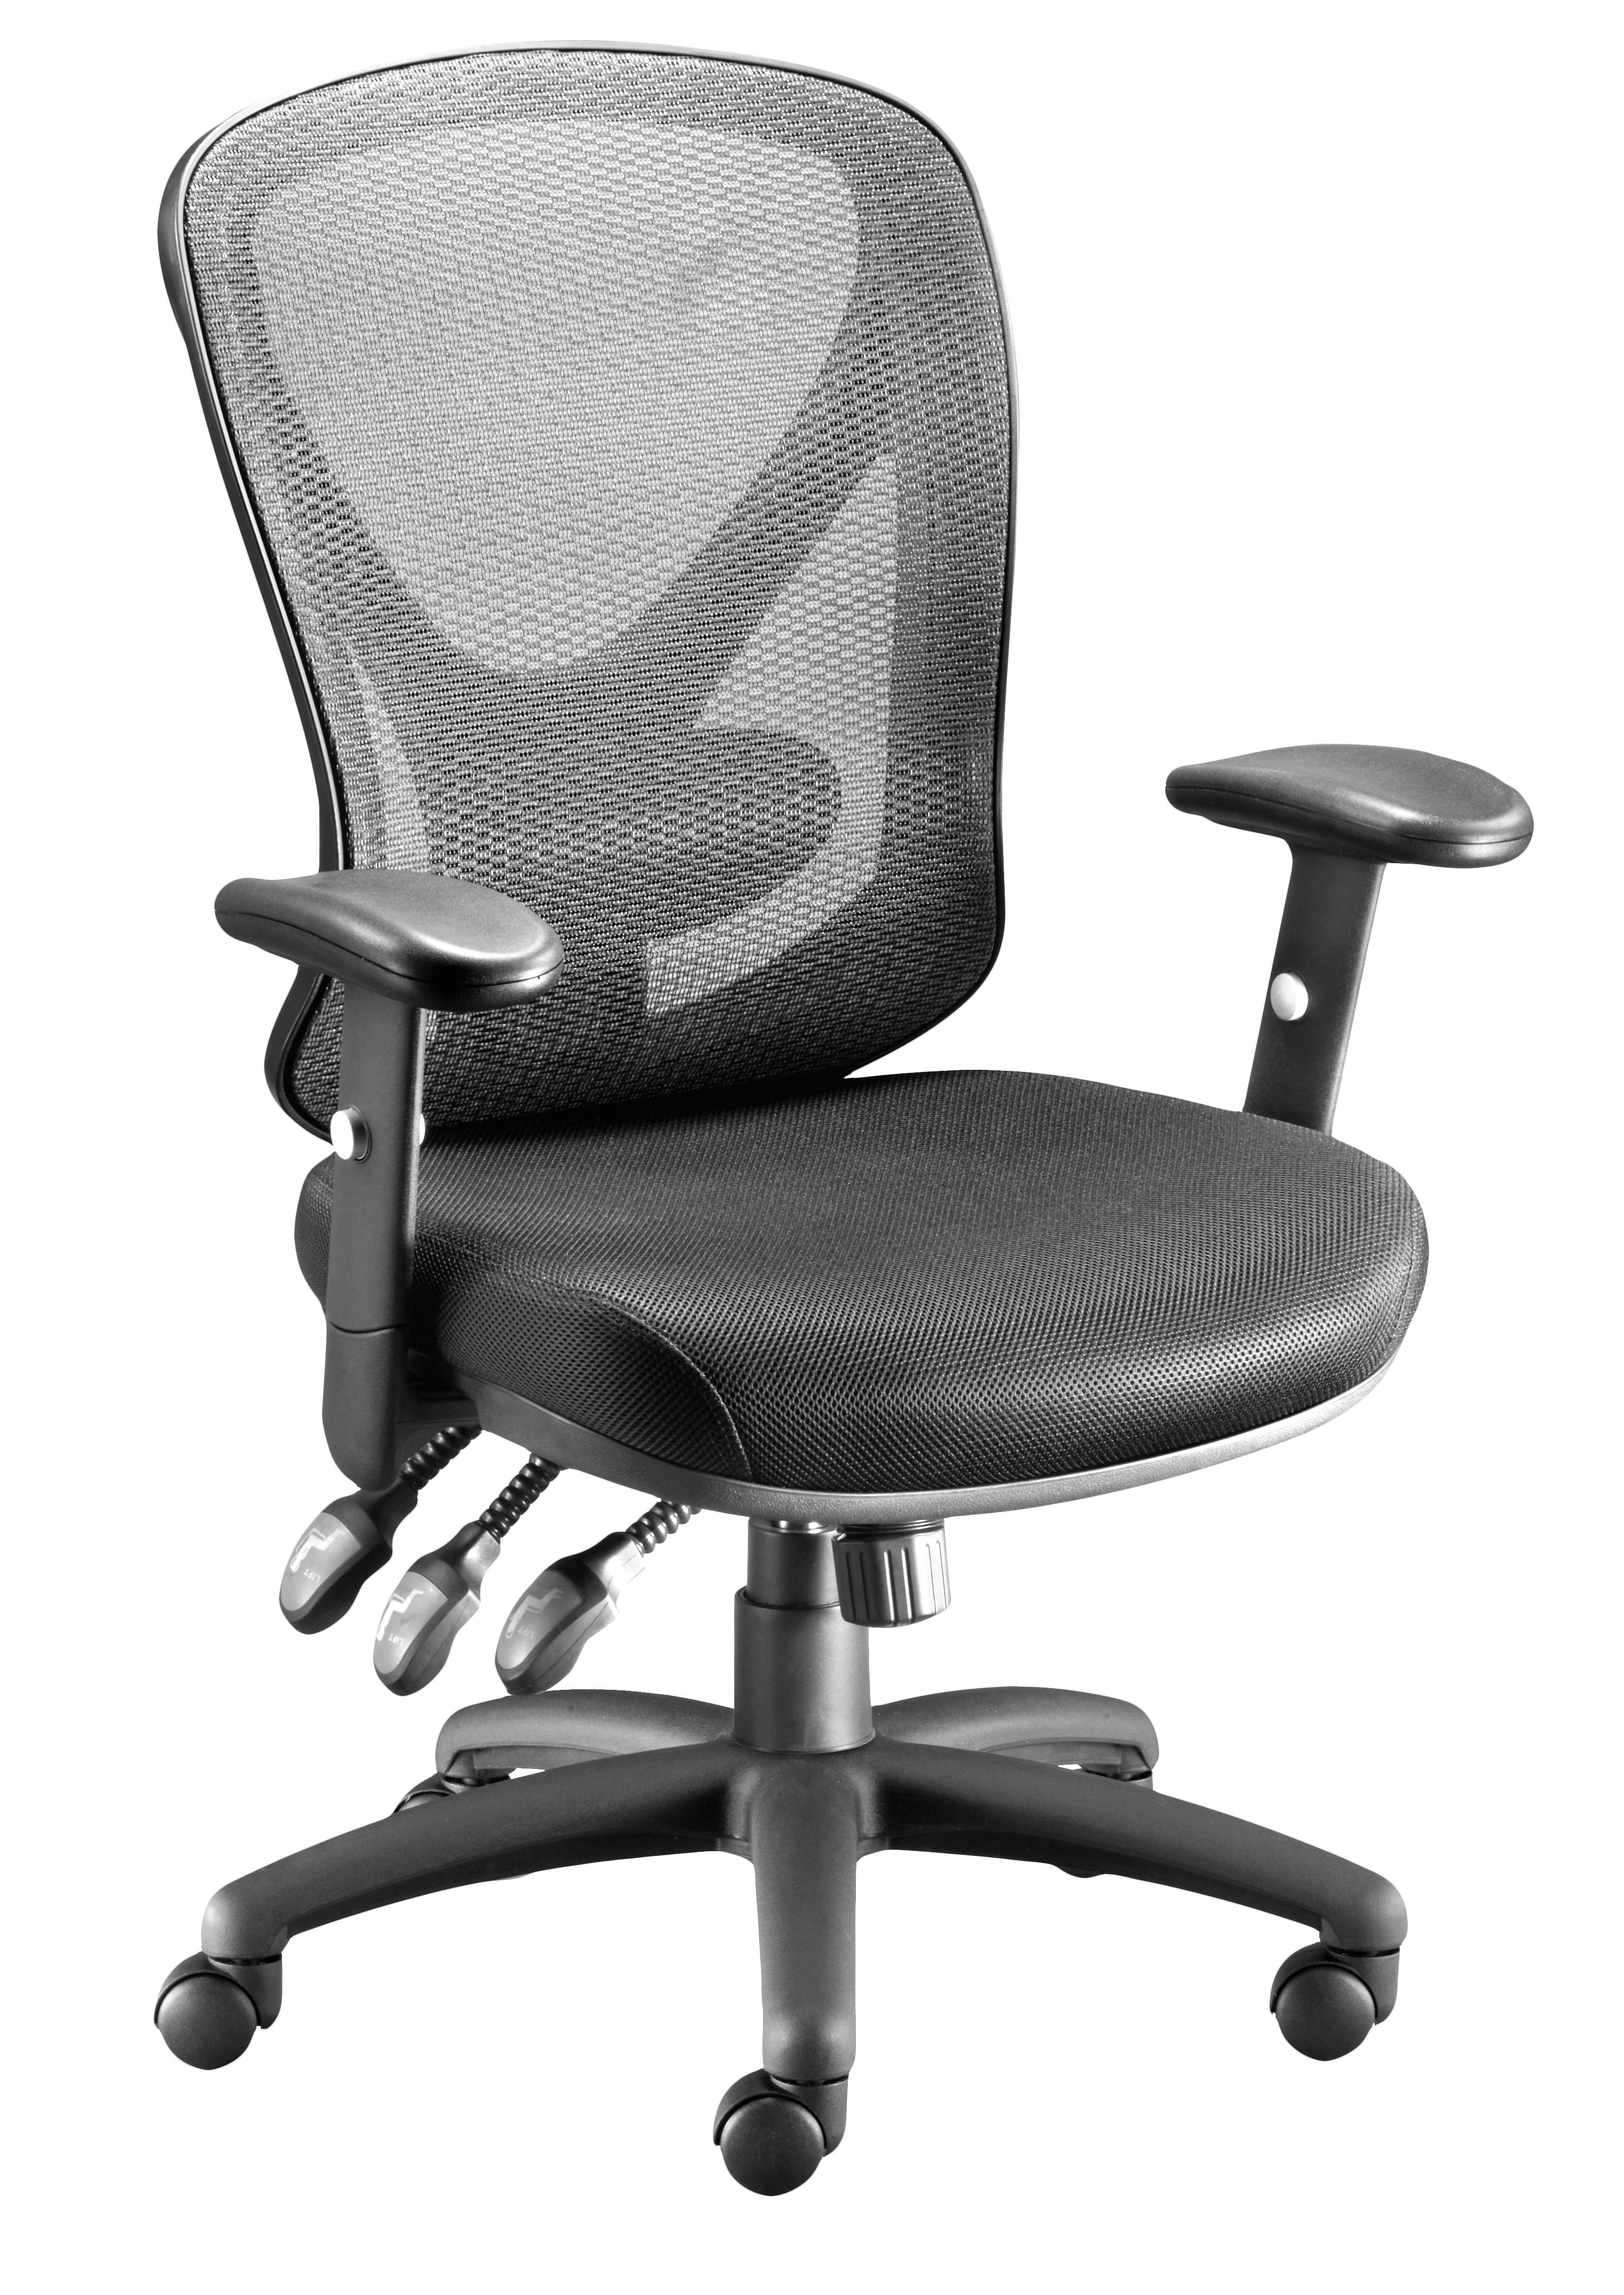 for non home office designcorner eksterior support gallery chairs interior desk lumbar chair back rolling